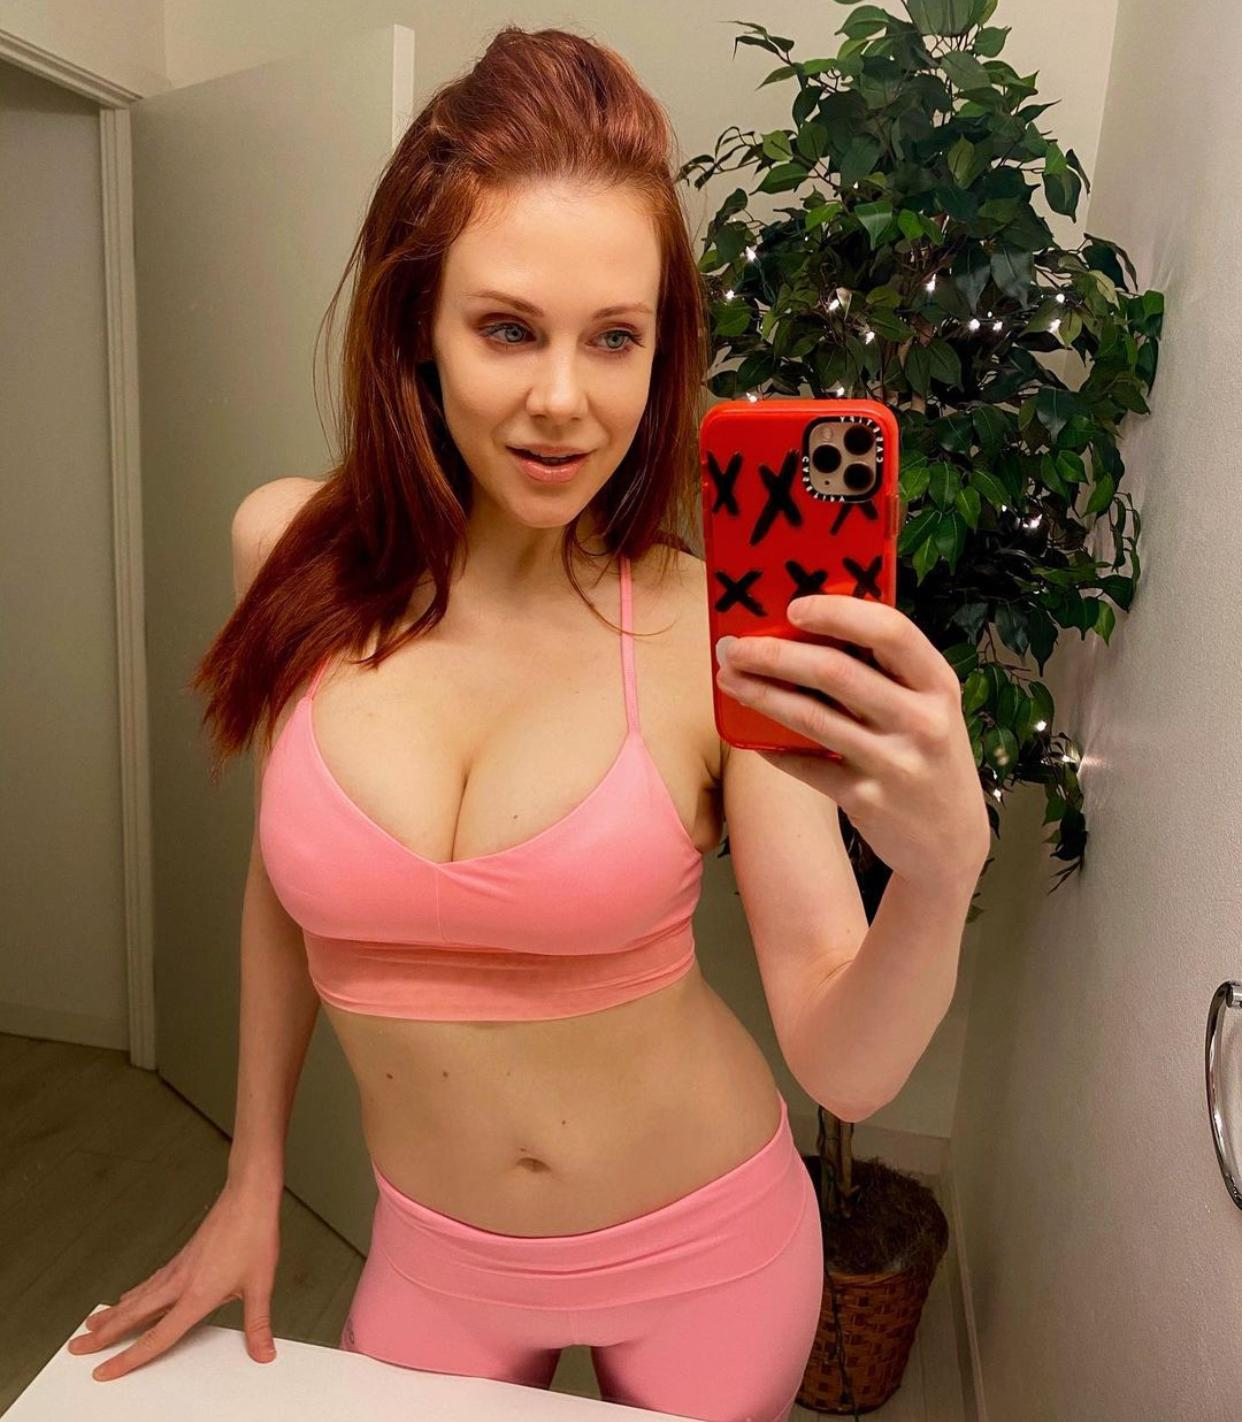 Picture with tags: Bisexuality, Interesting, Find a sponsor, South Africa, Lingerie, Girl, Red hair